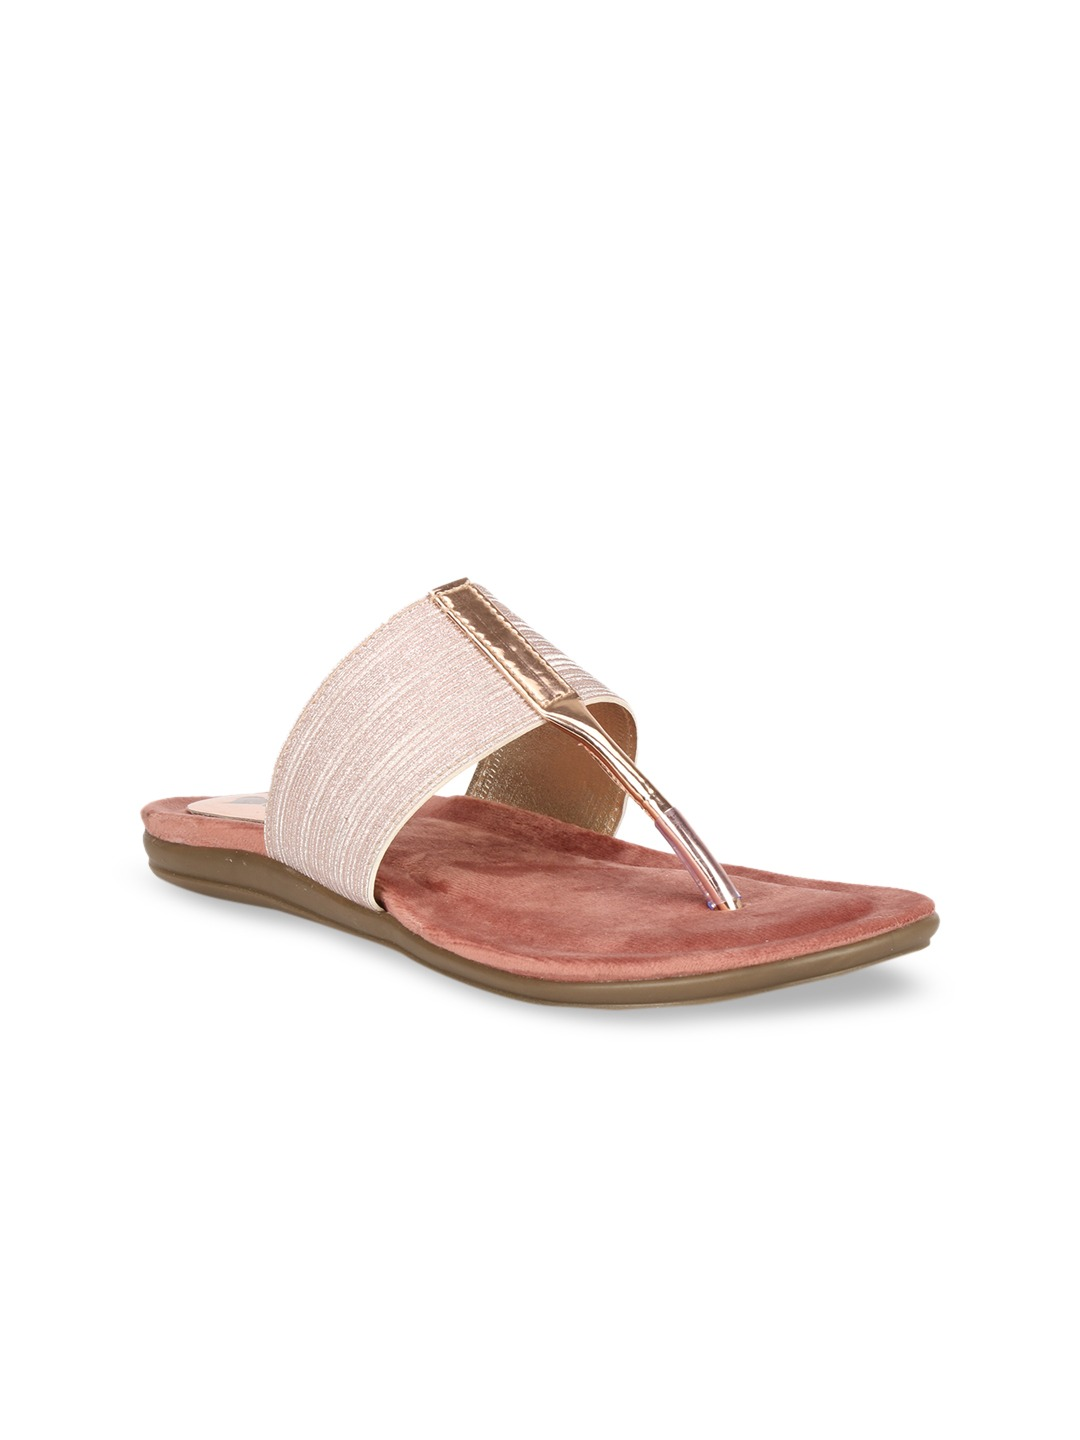 Pink Solid Suede Open Toe Flats